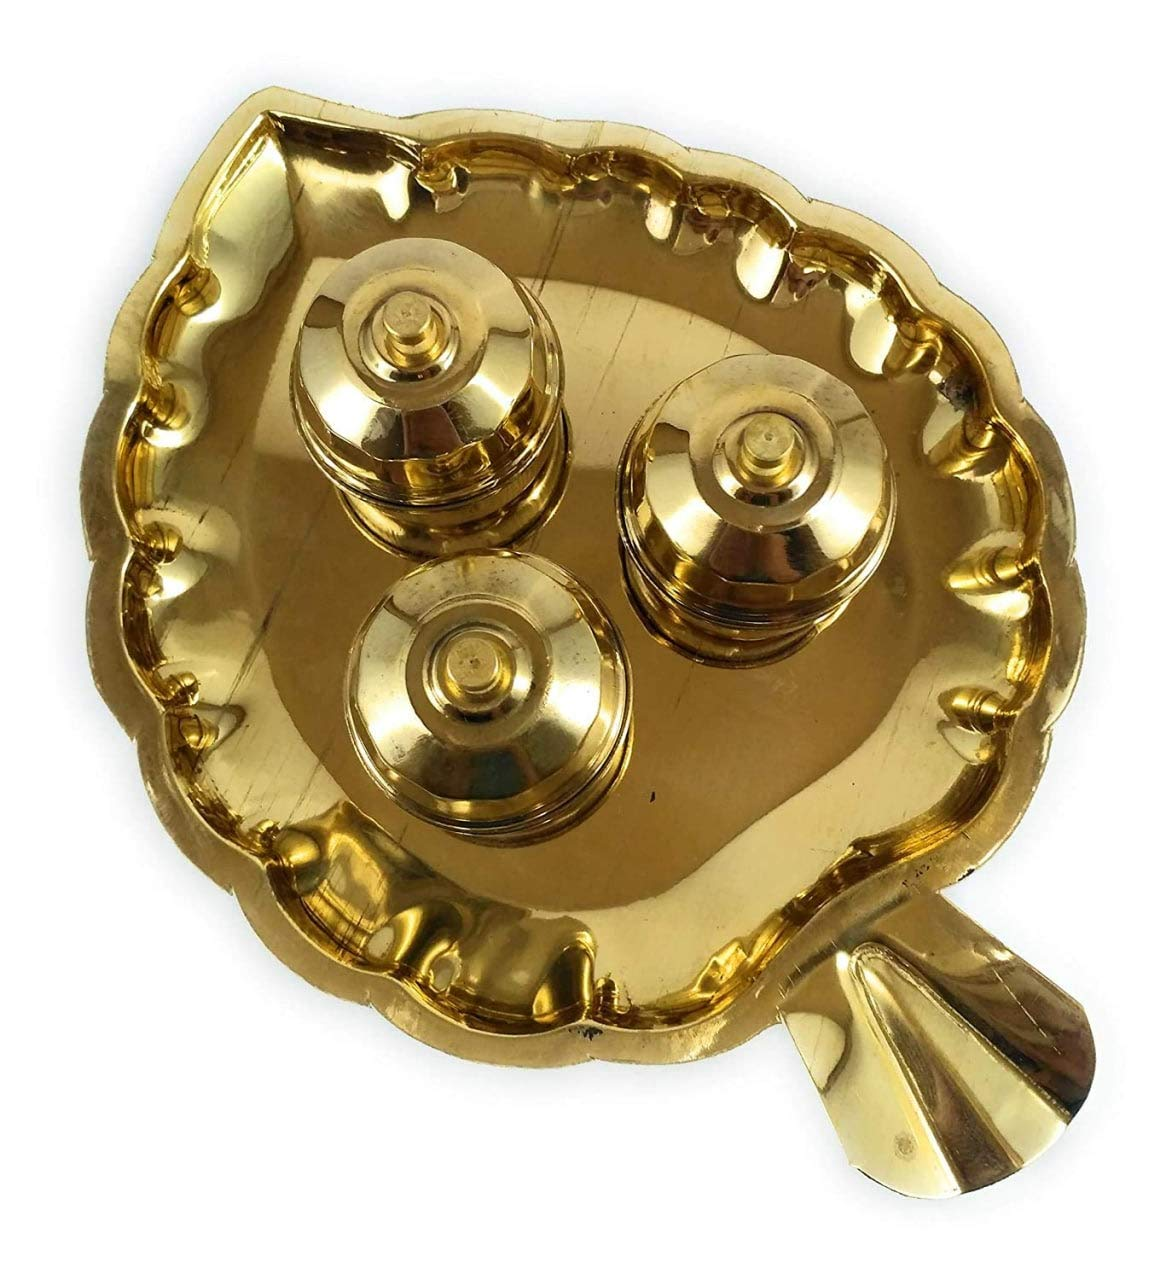 Divine Traditional Handcrafted Brass Thali Kumkum Plate For Pooja/Worship 3 Bowl -Big Leaf